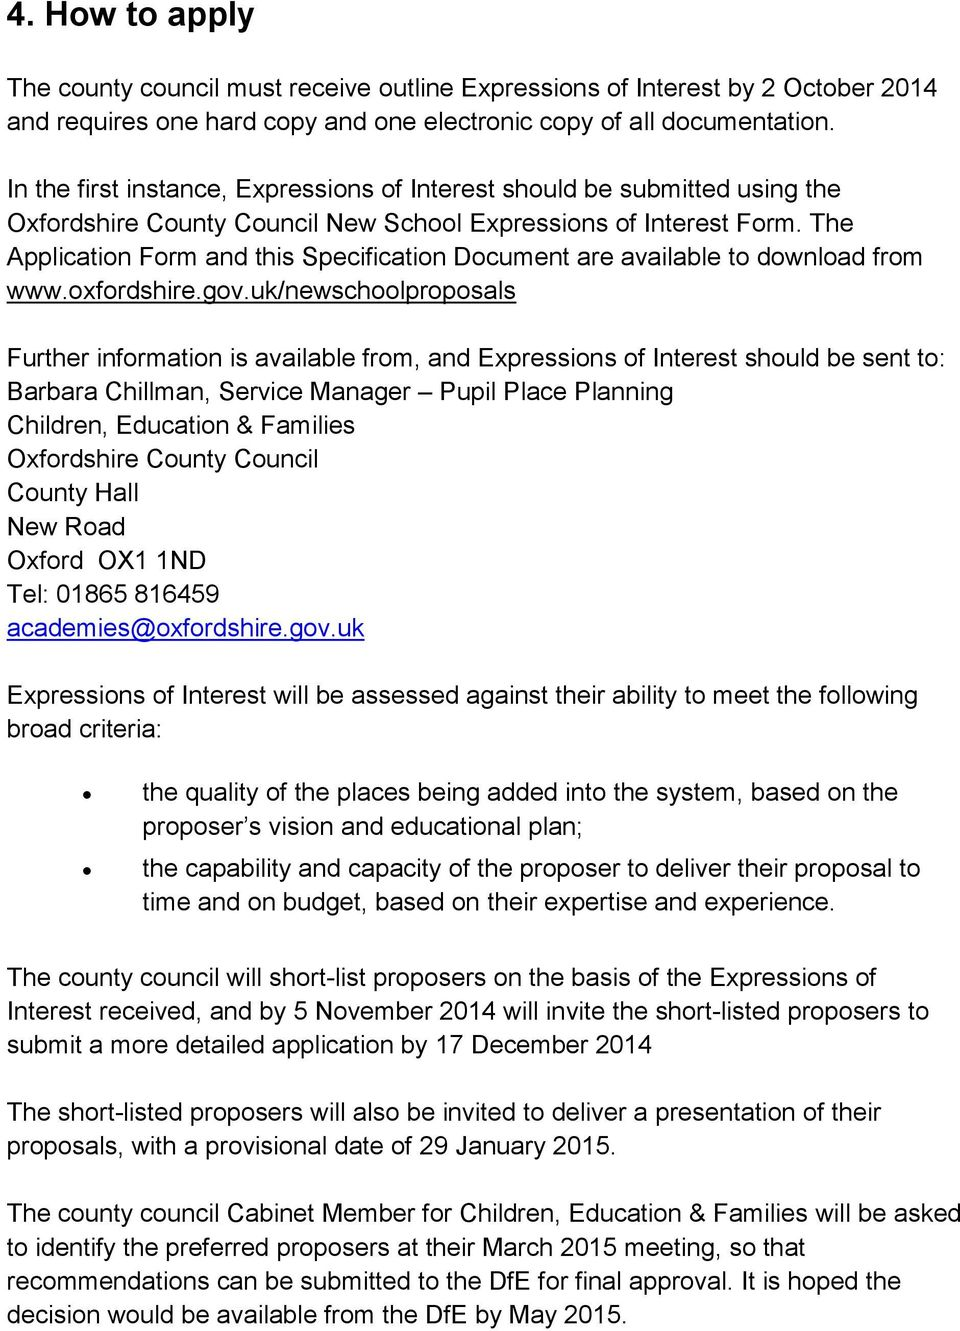 The Application Form and this Specification Document are available to download from www.oxfordshire.gov.